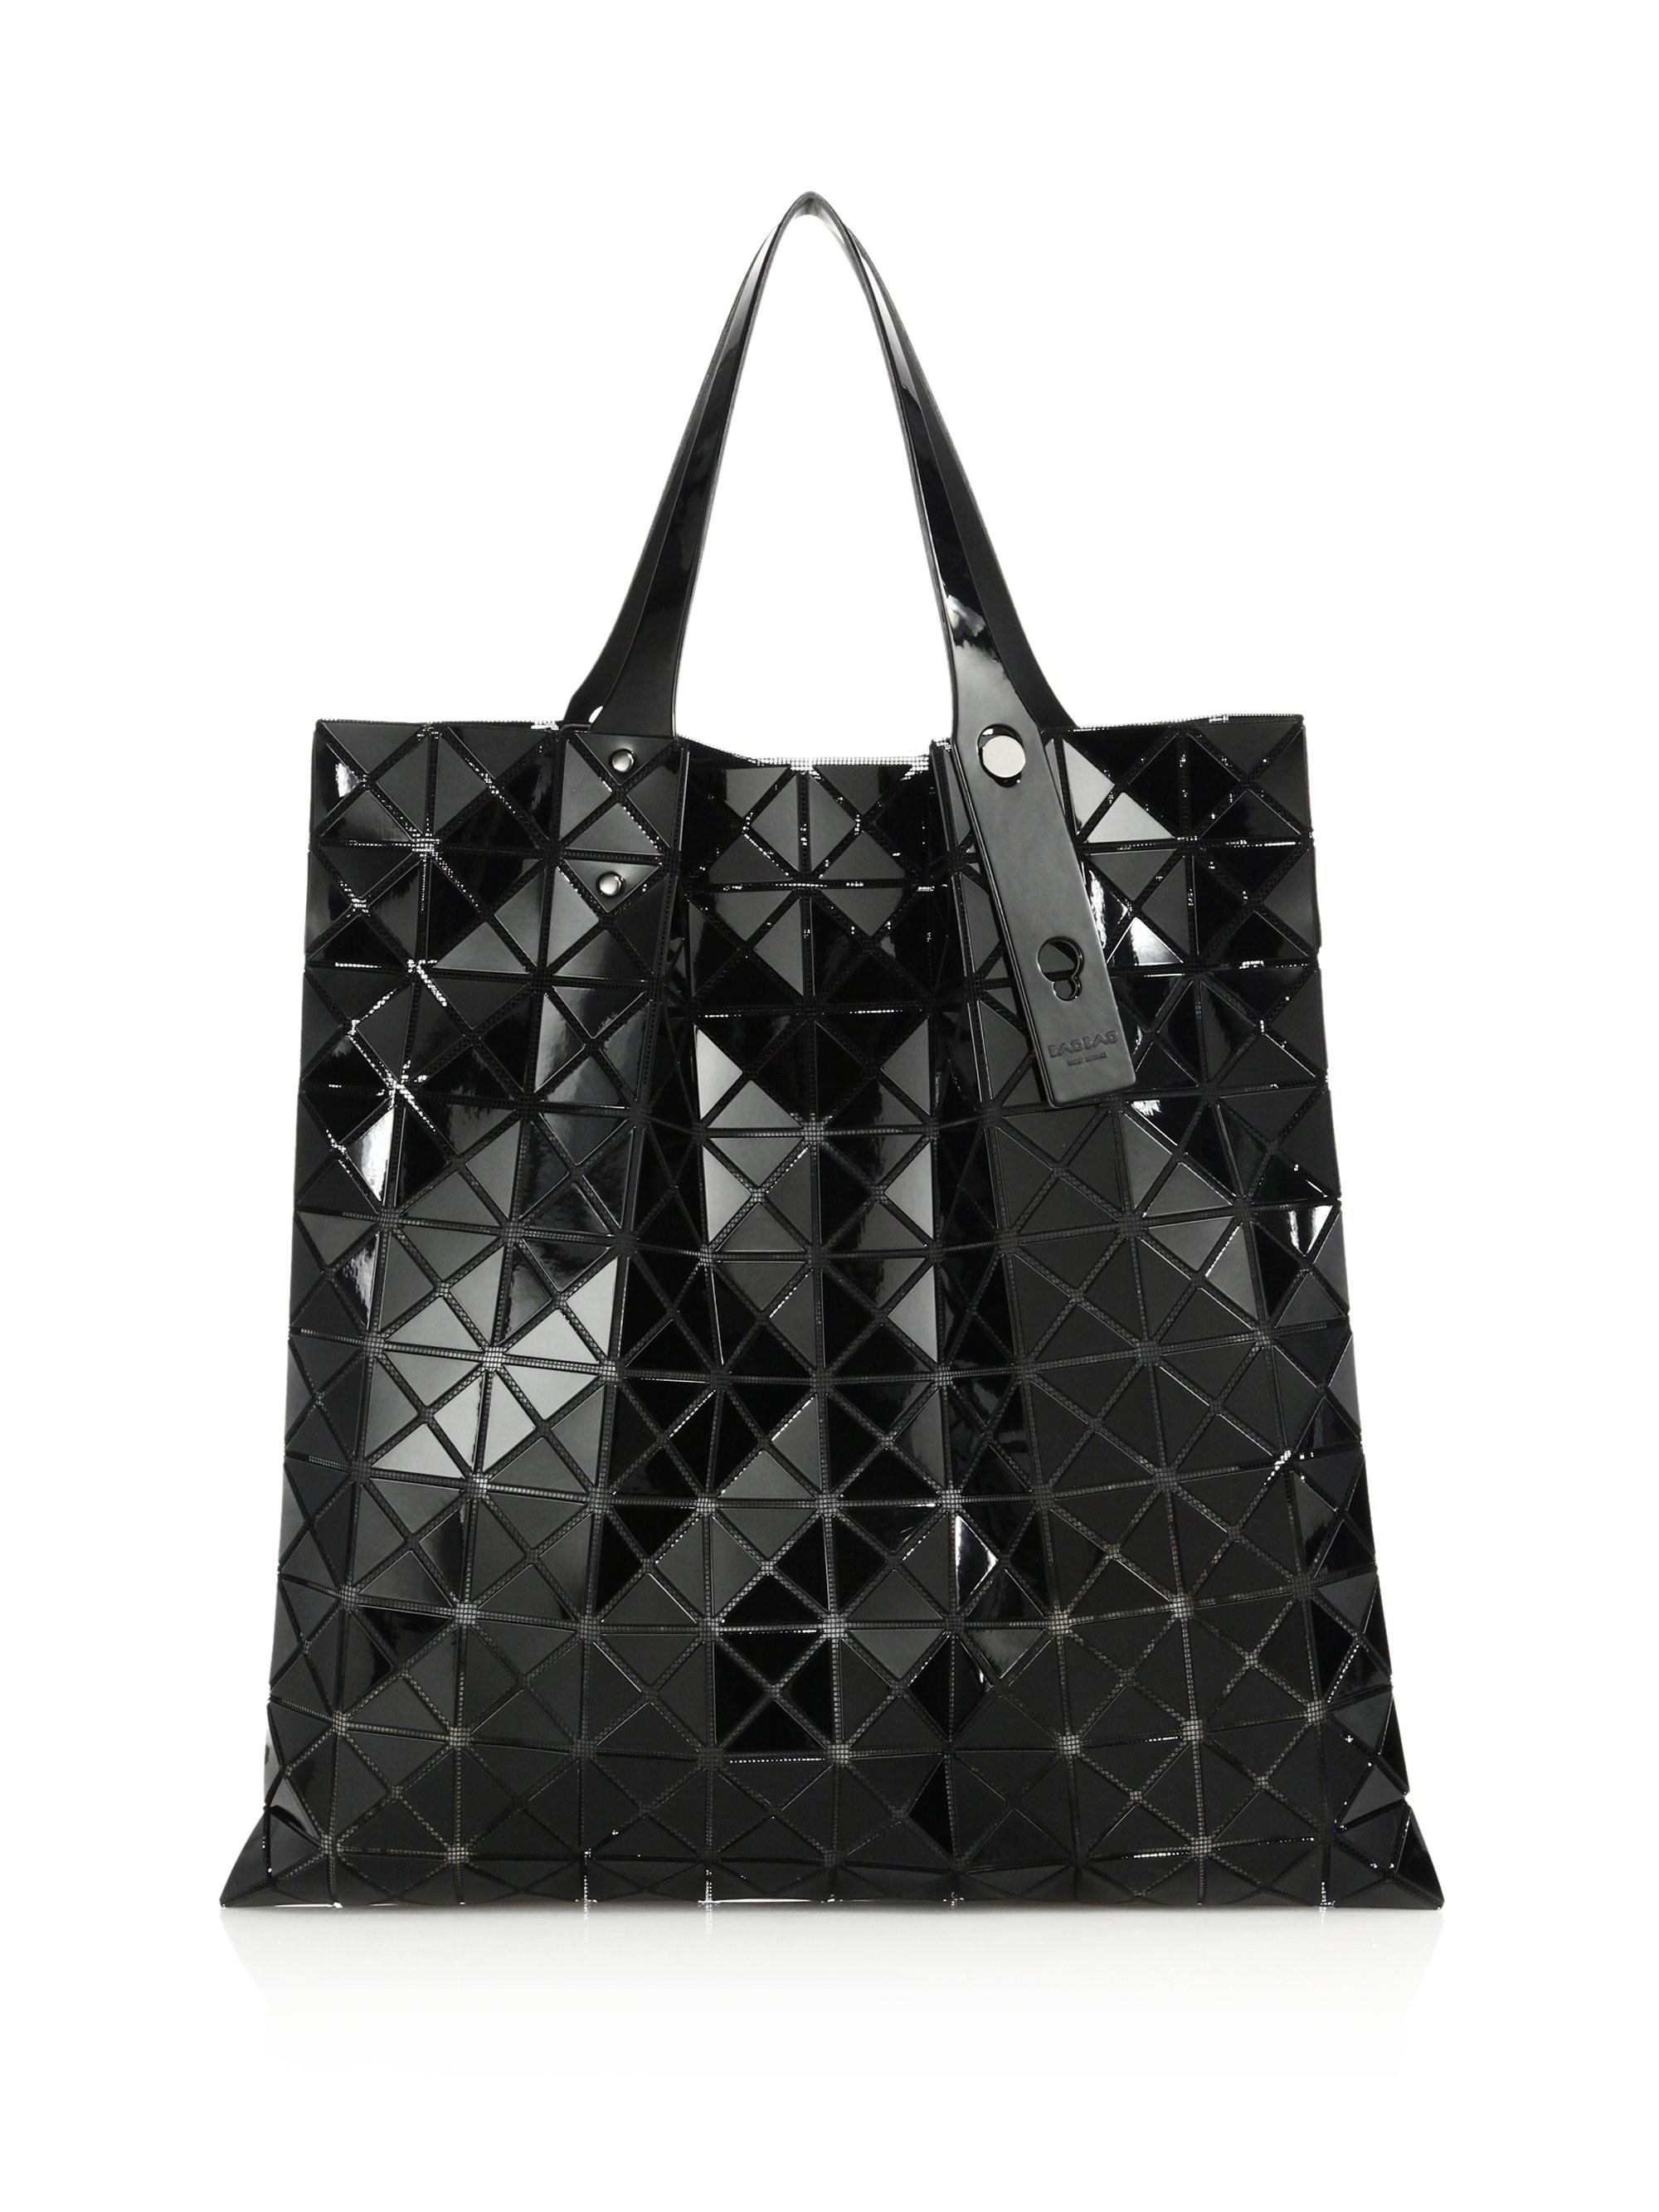 Lyst - Bao Bao Issey Miyake  prism  Tote in Black - Save 34% f60a6a79368b2